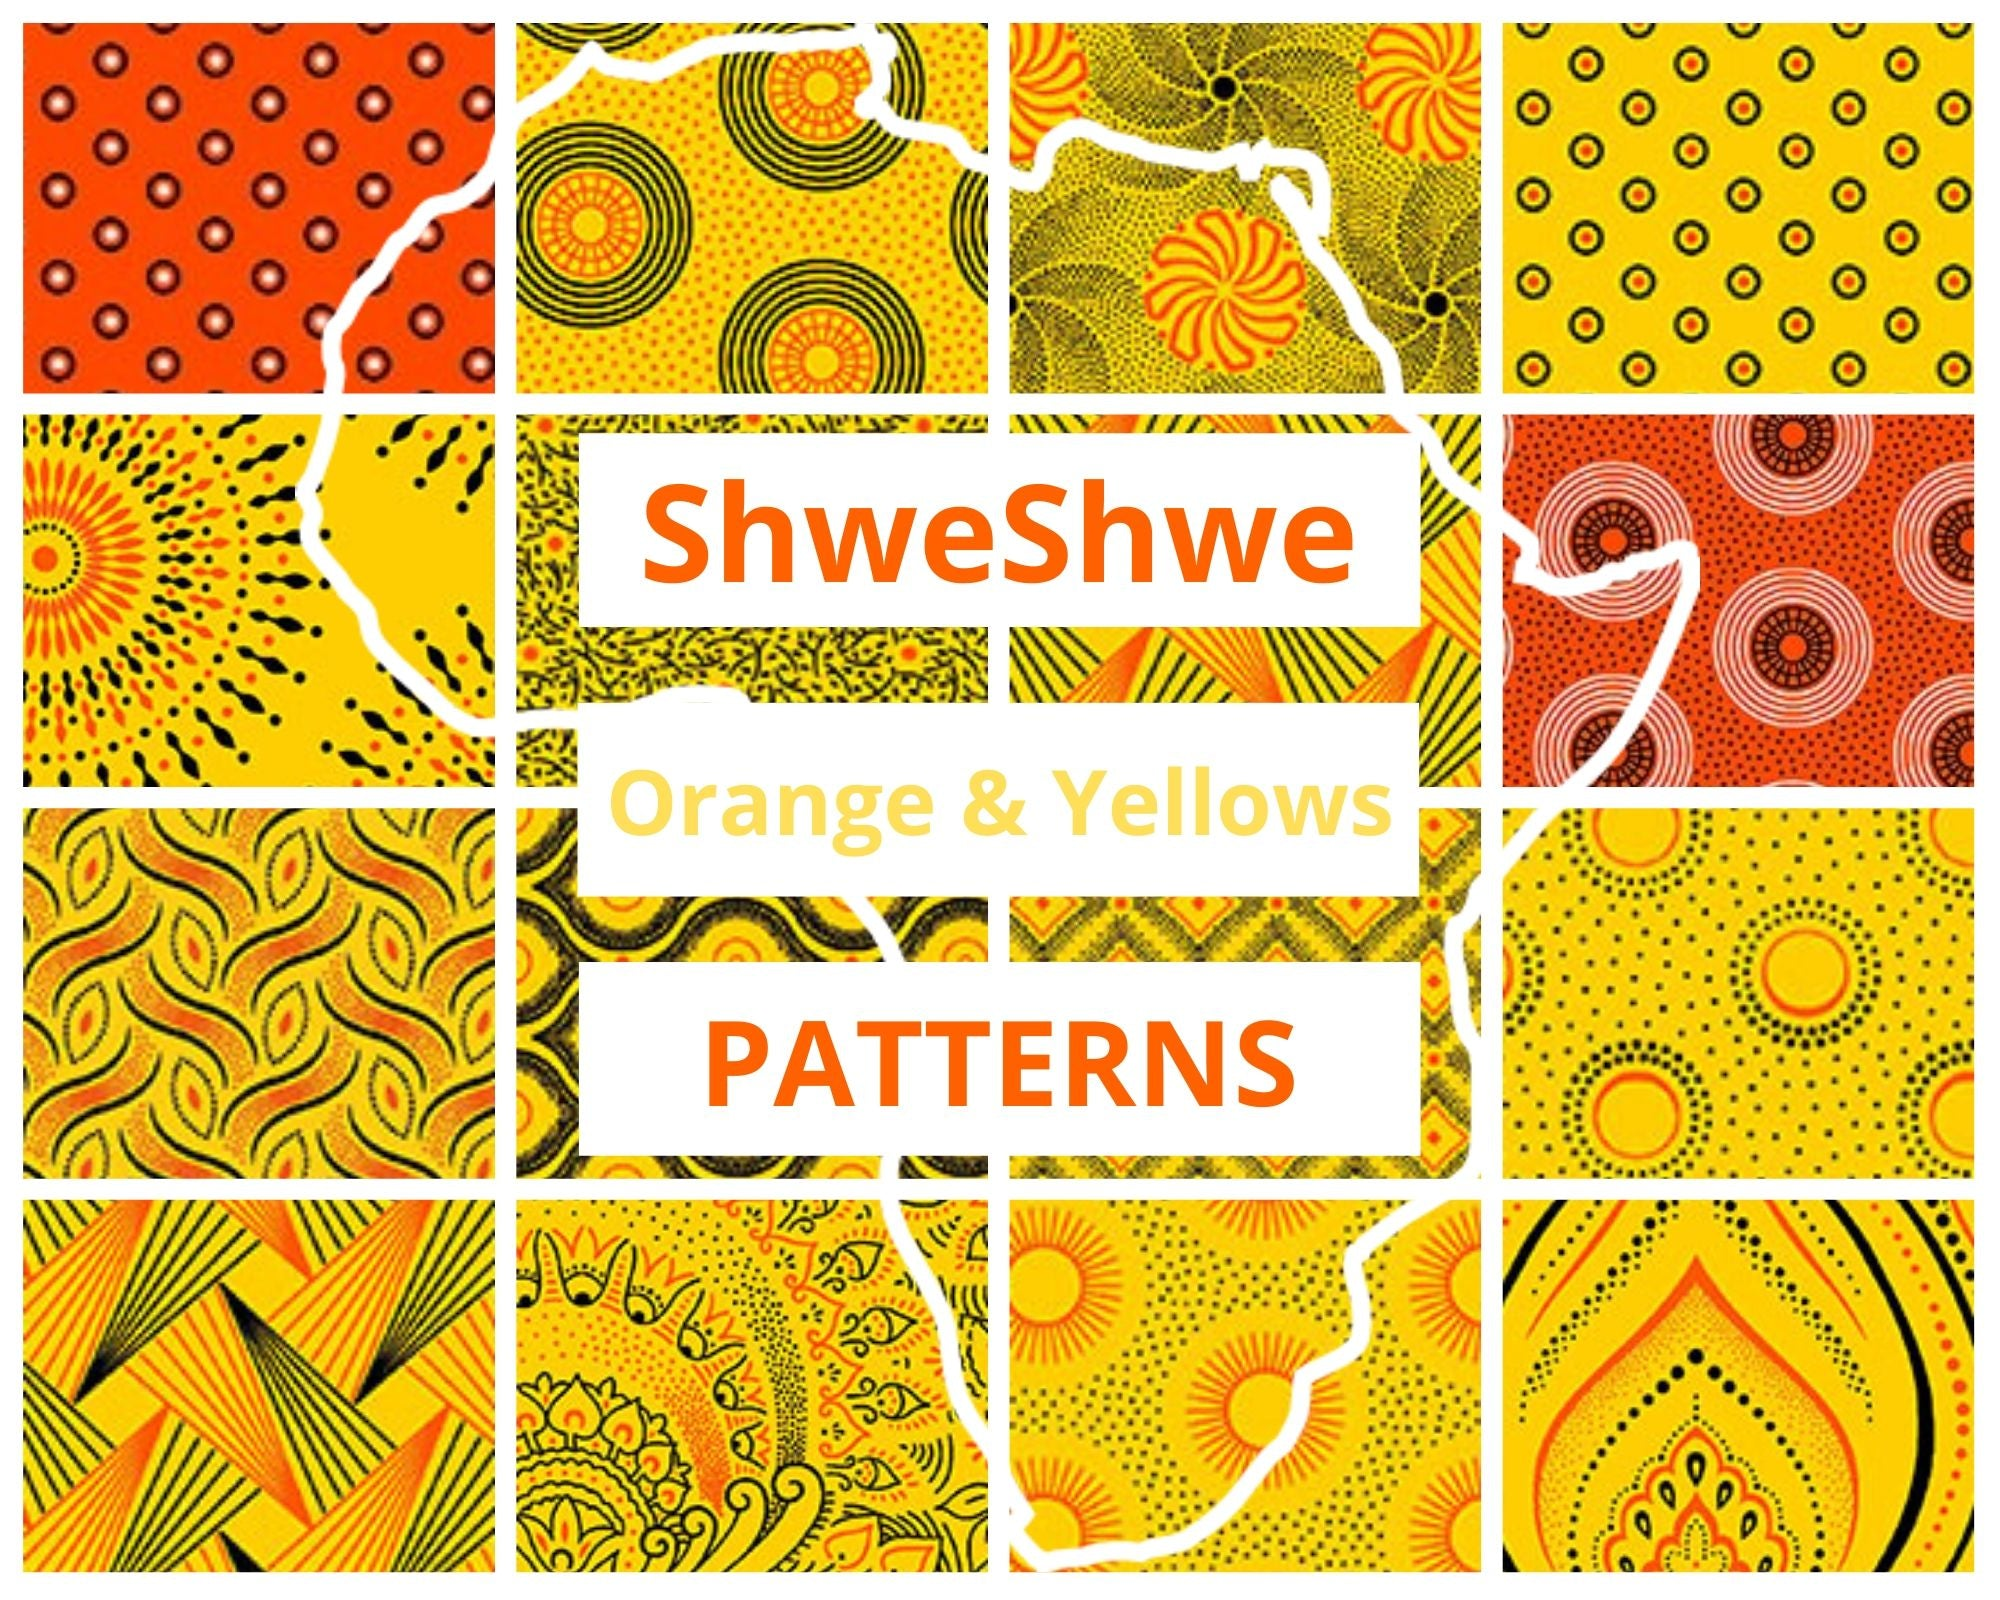 ShweShwe Reusable Fabric Face Masks -Orange & Yellow Patterns